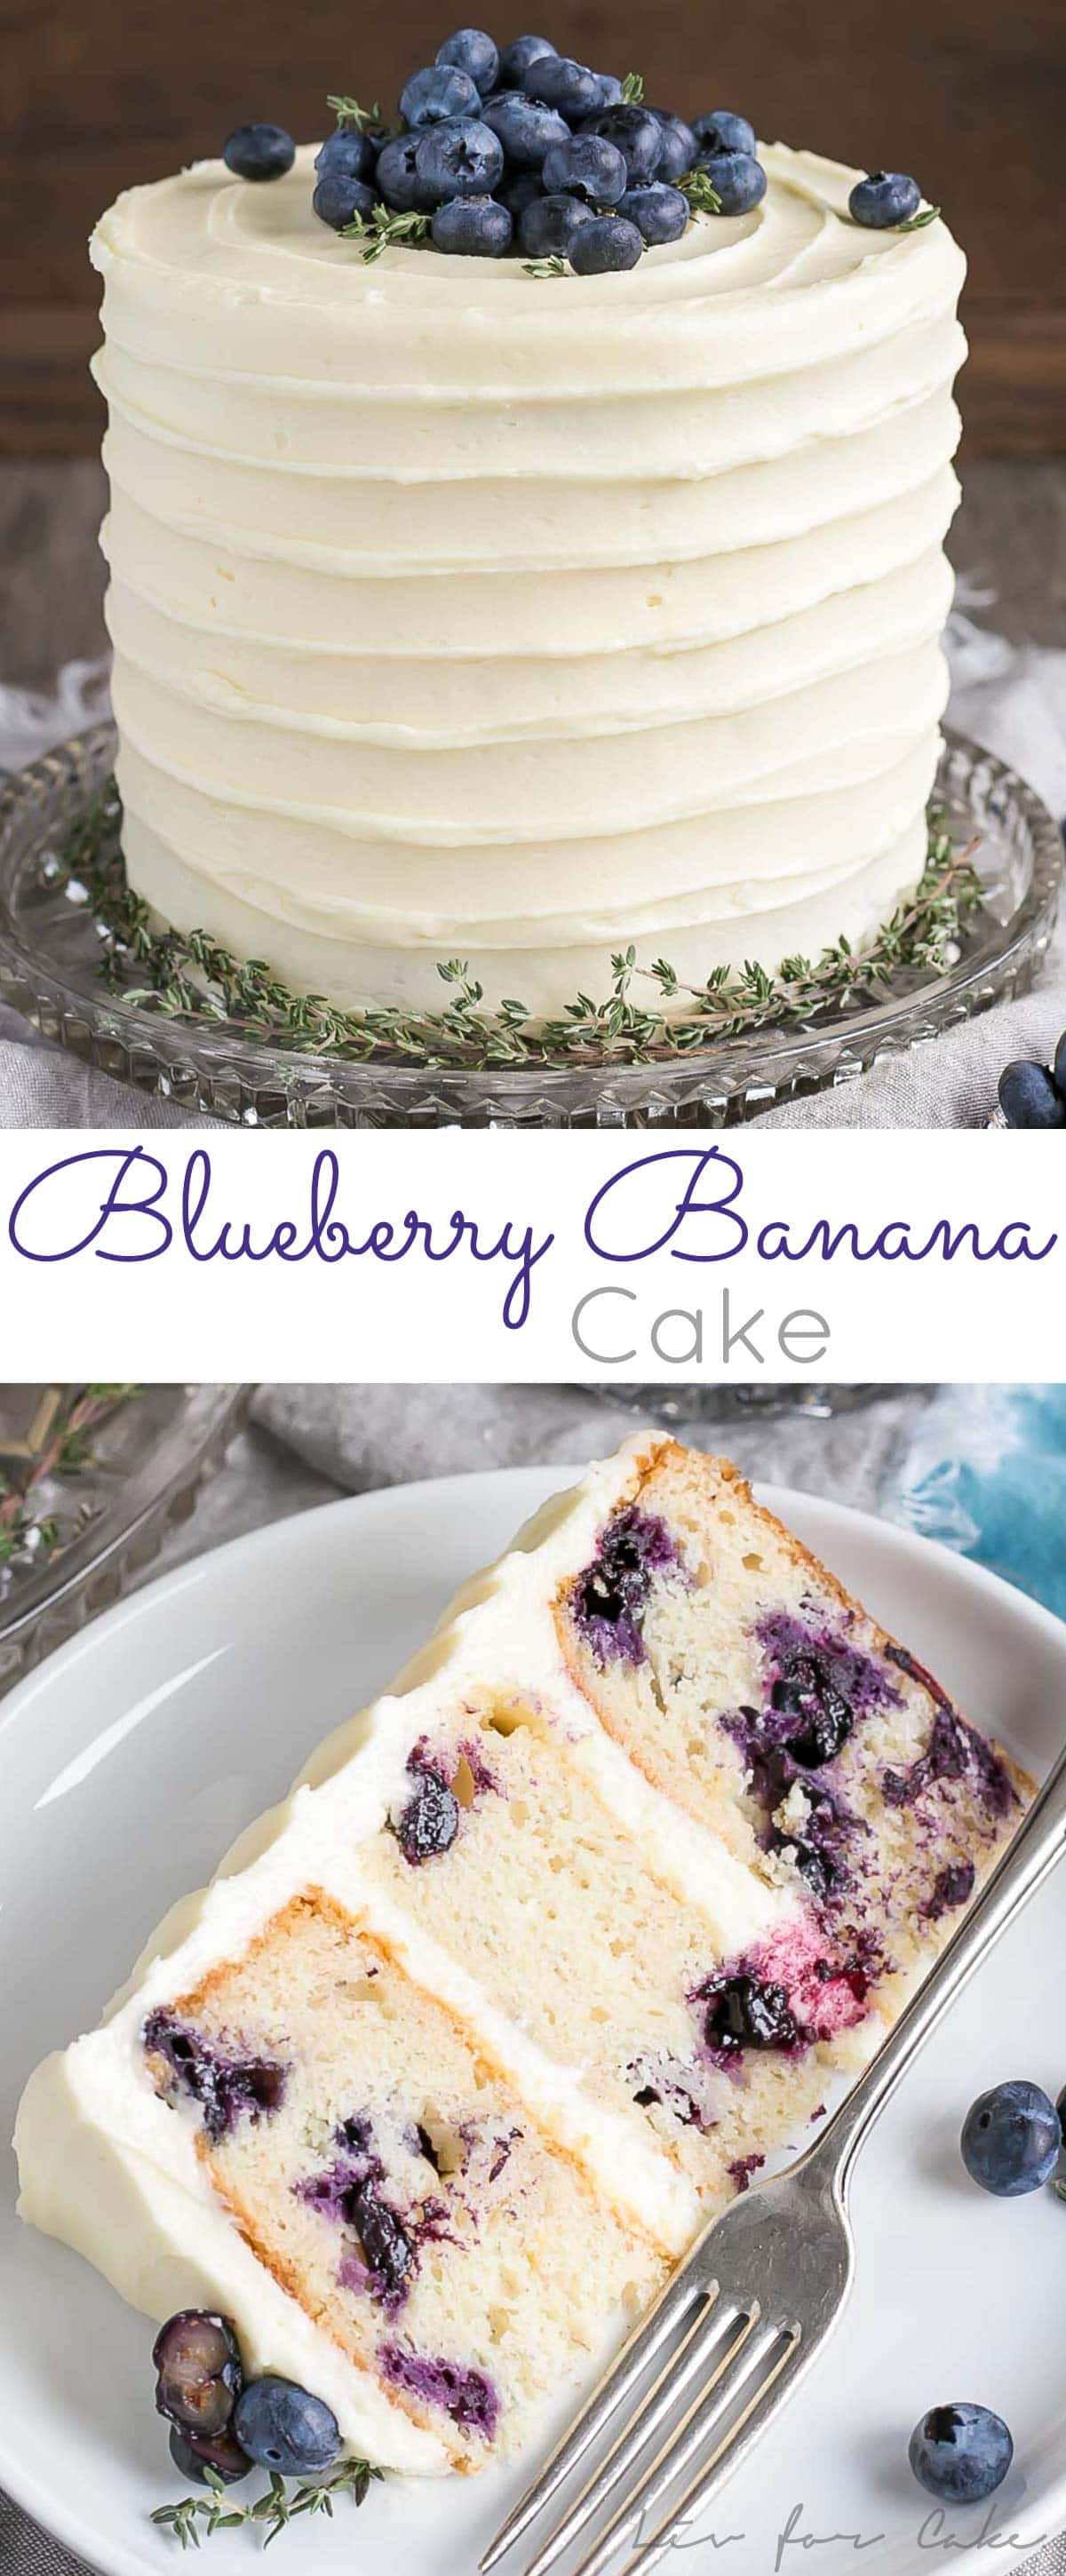 banana wedding cake recipe blueberry banana cake with cheese frosting liv for 11062